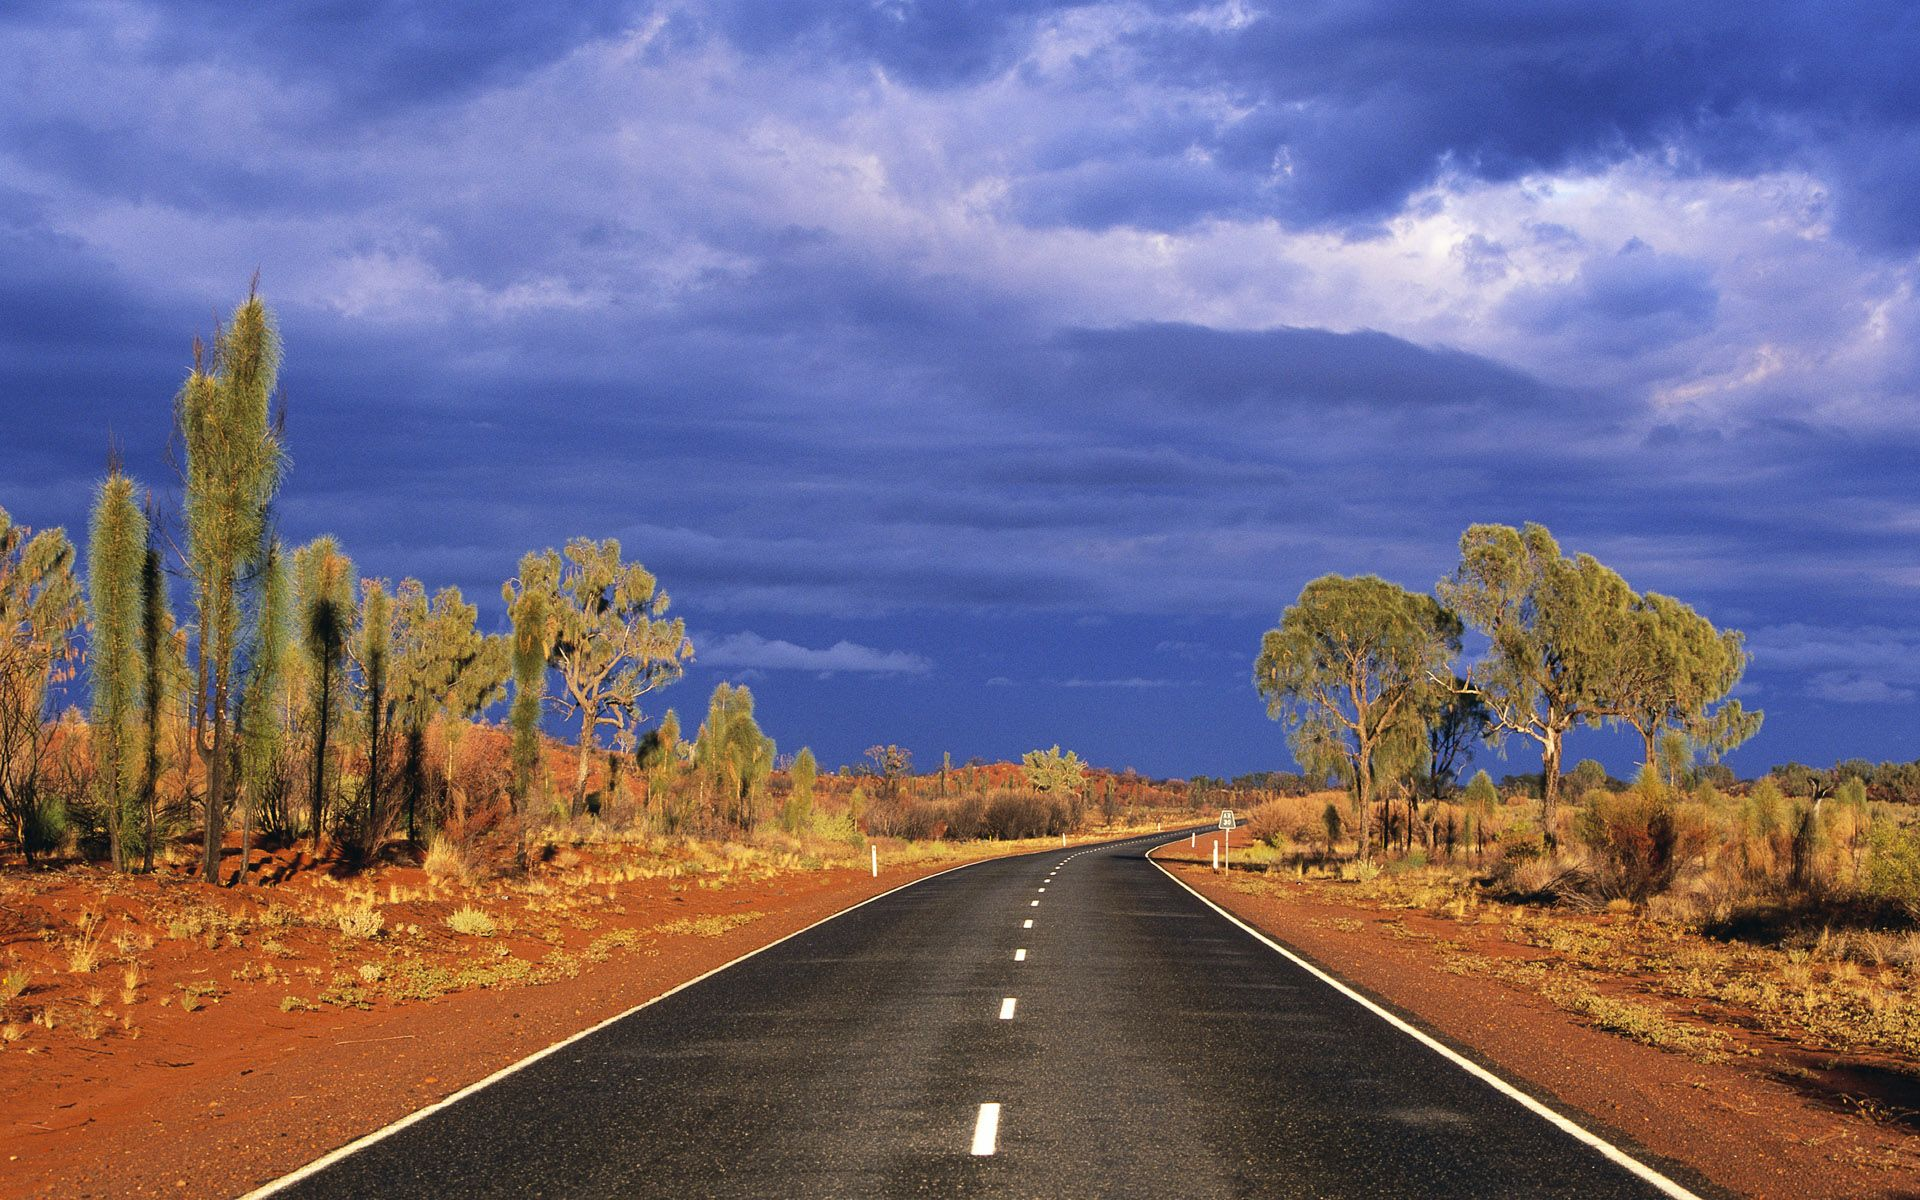 hd australian road wallpaper download free 94477